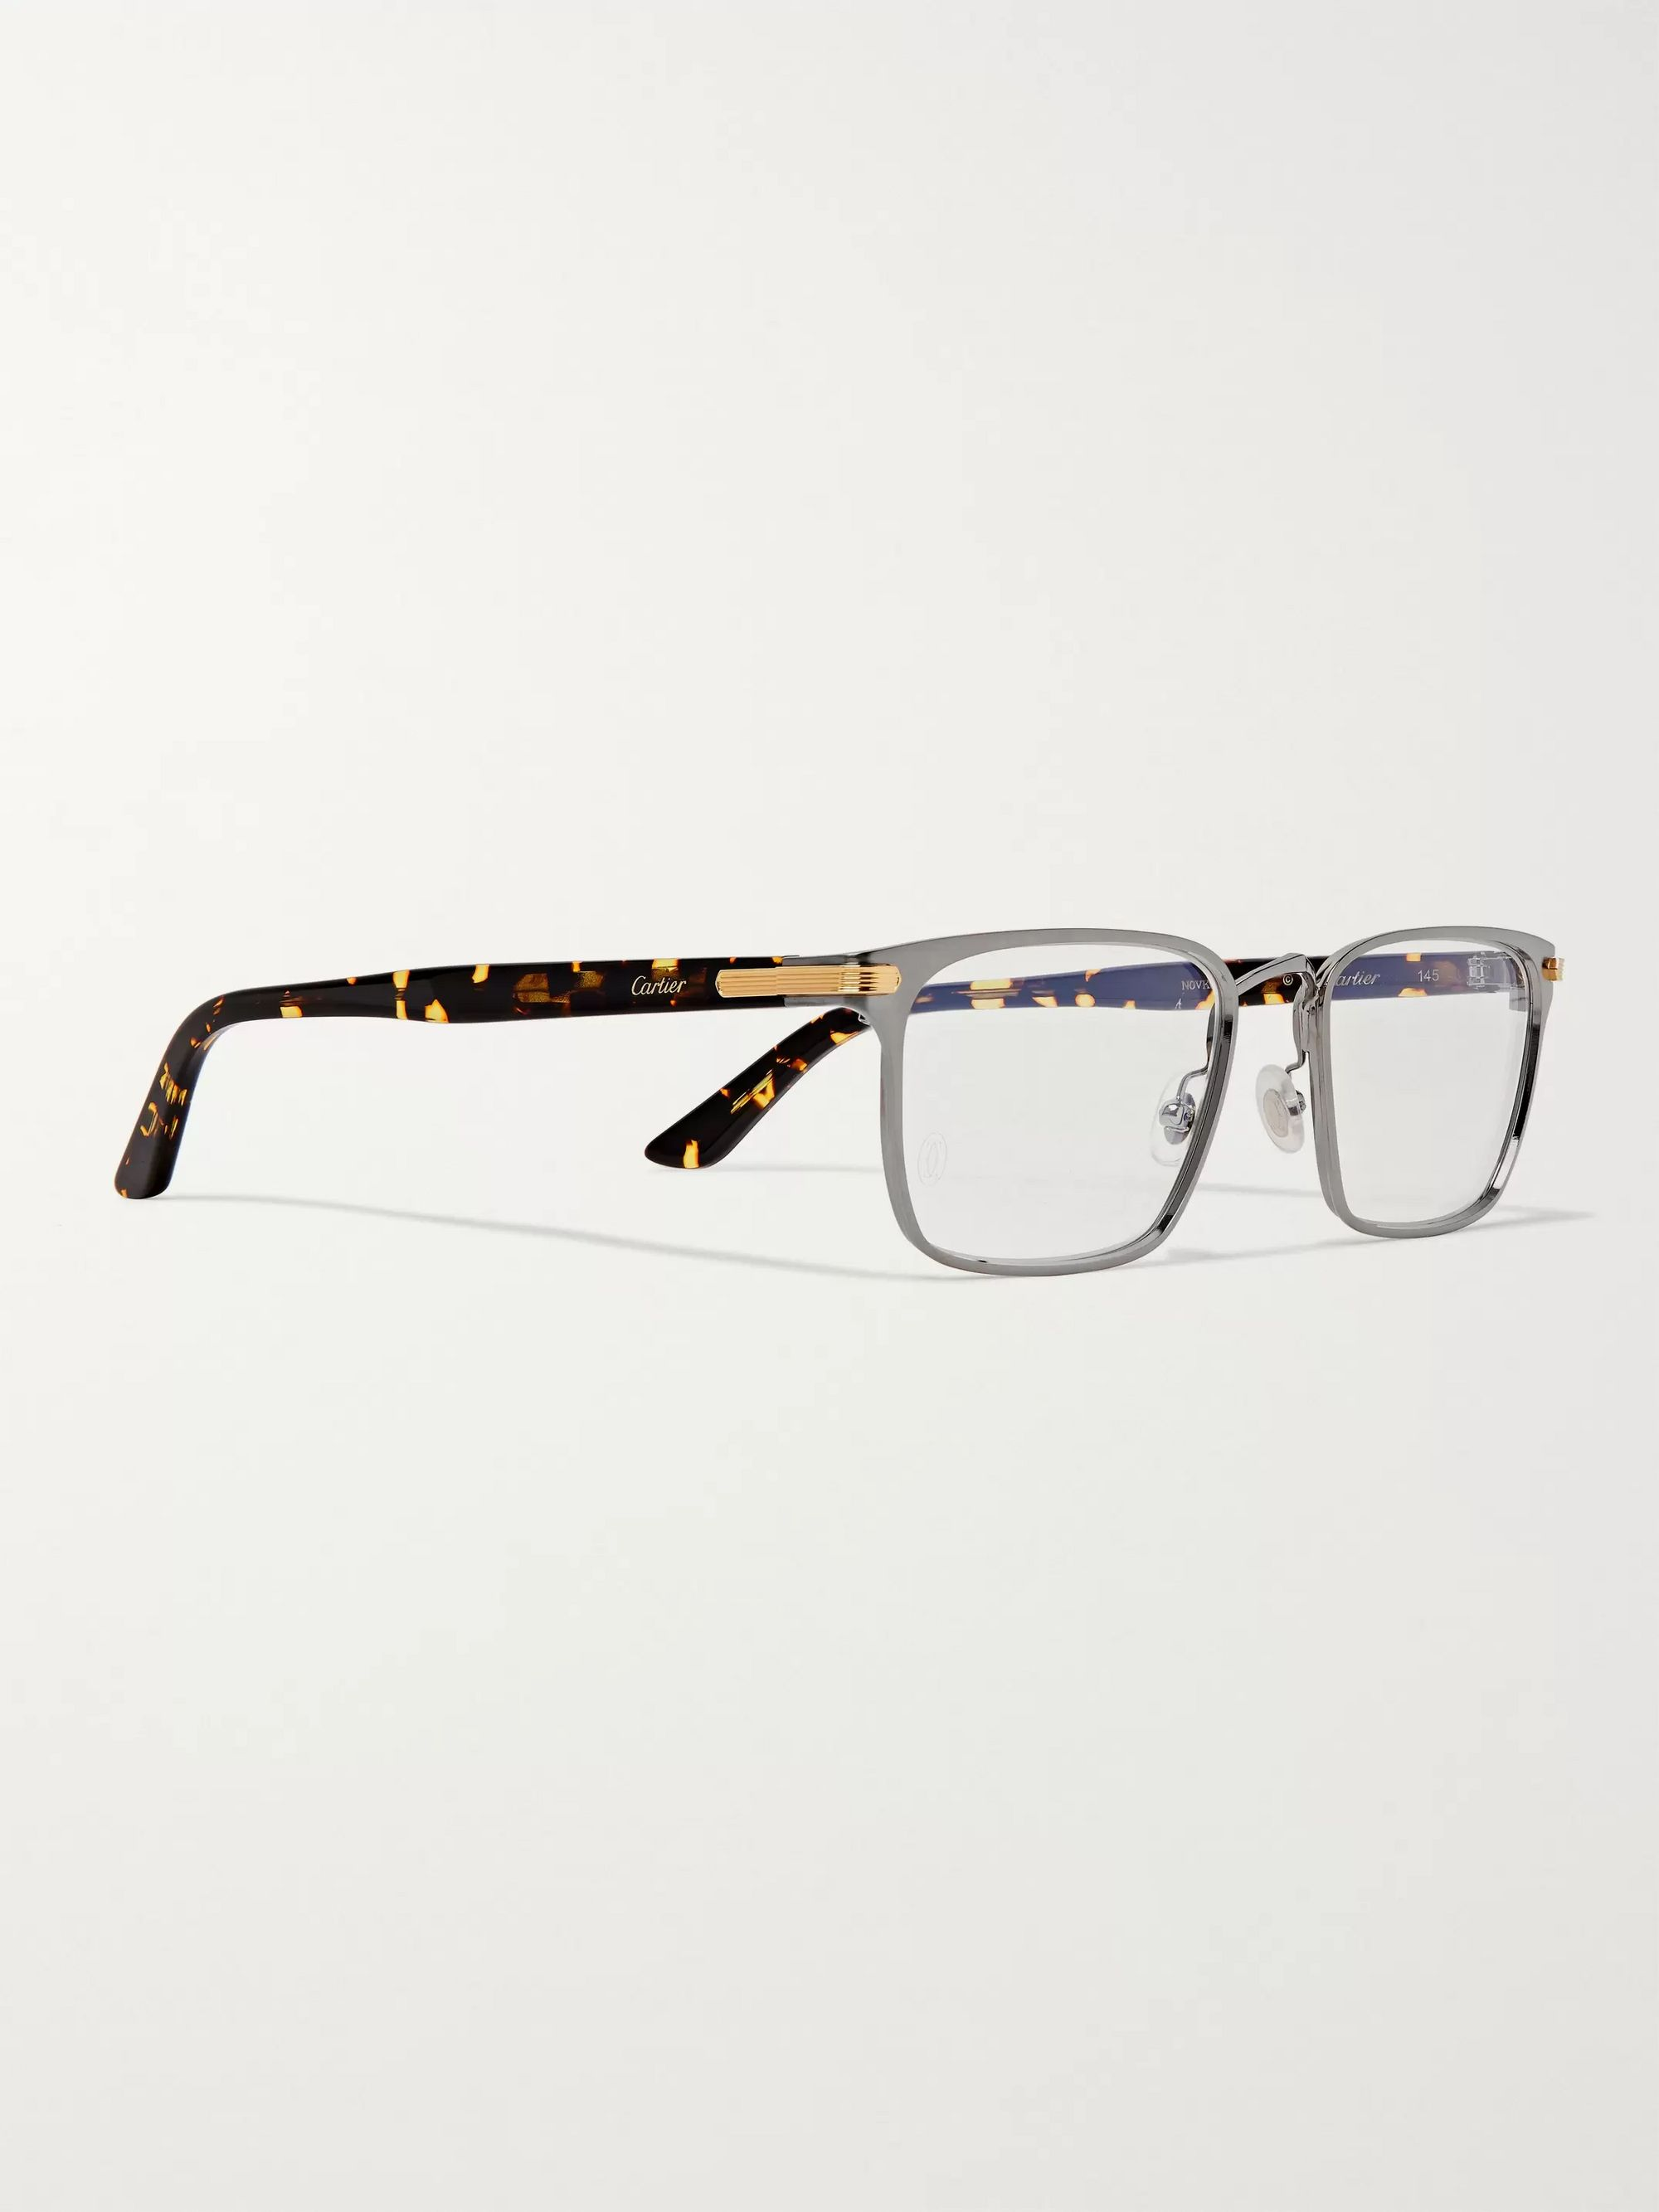 Cartier Eyewear Square-Frame Tortoiseshell Acetate and Silver-Tone Optical Glasses